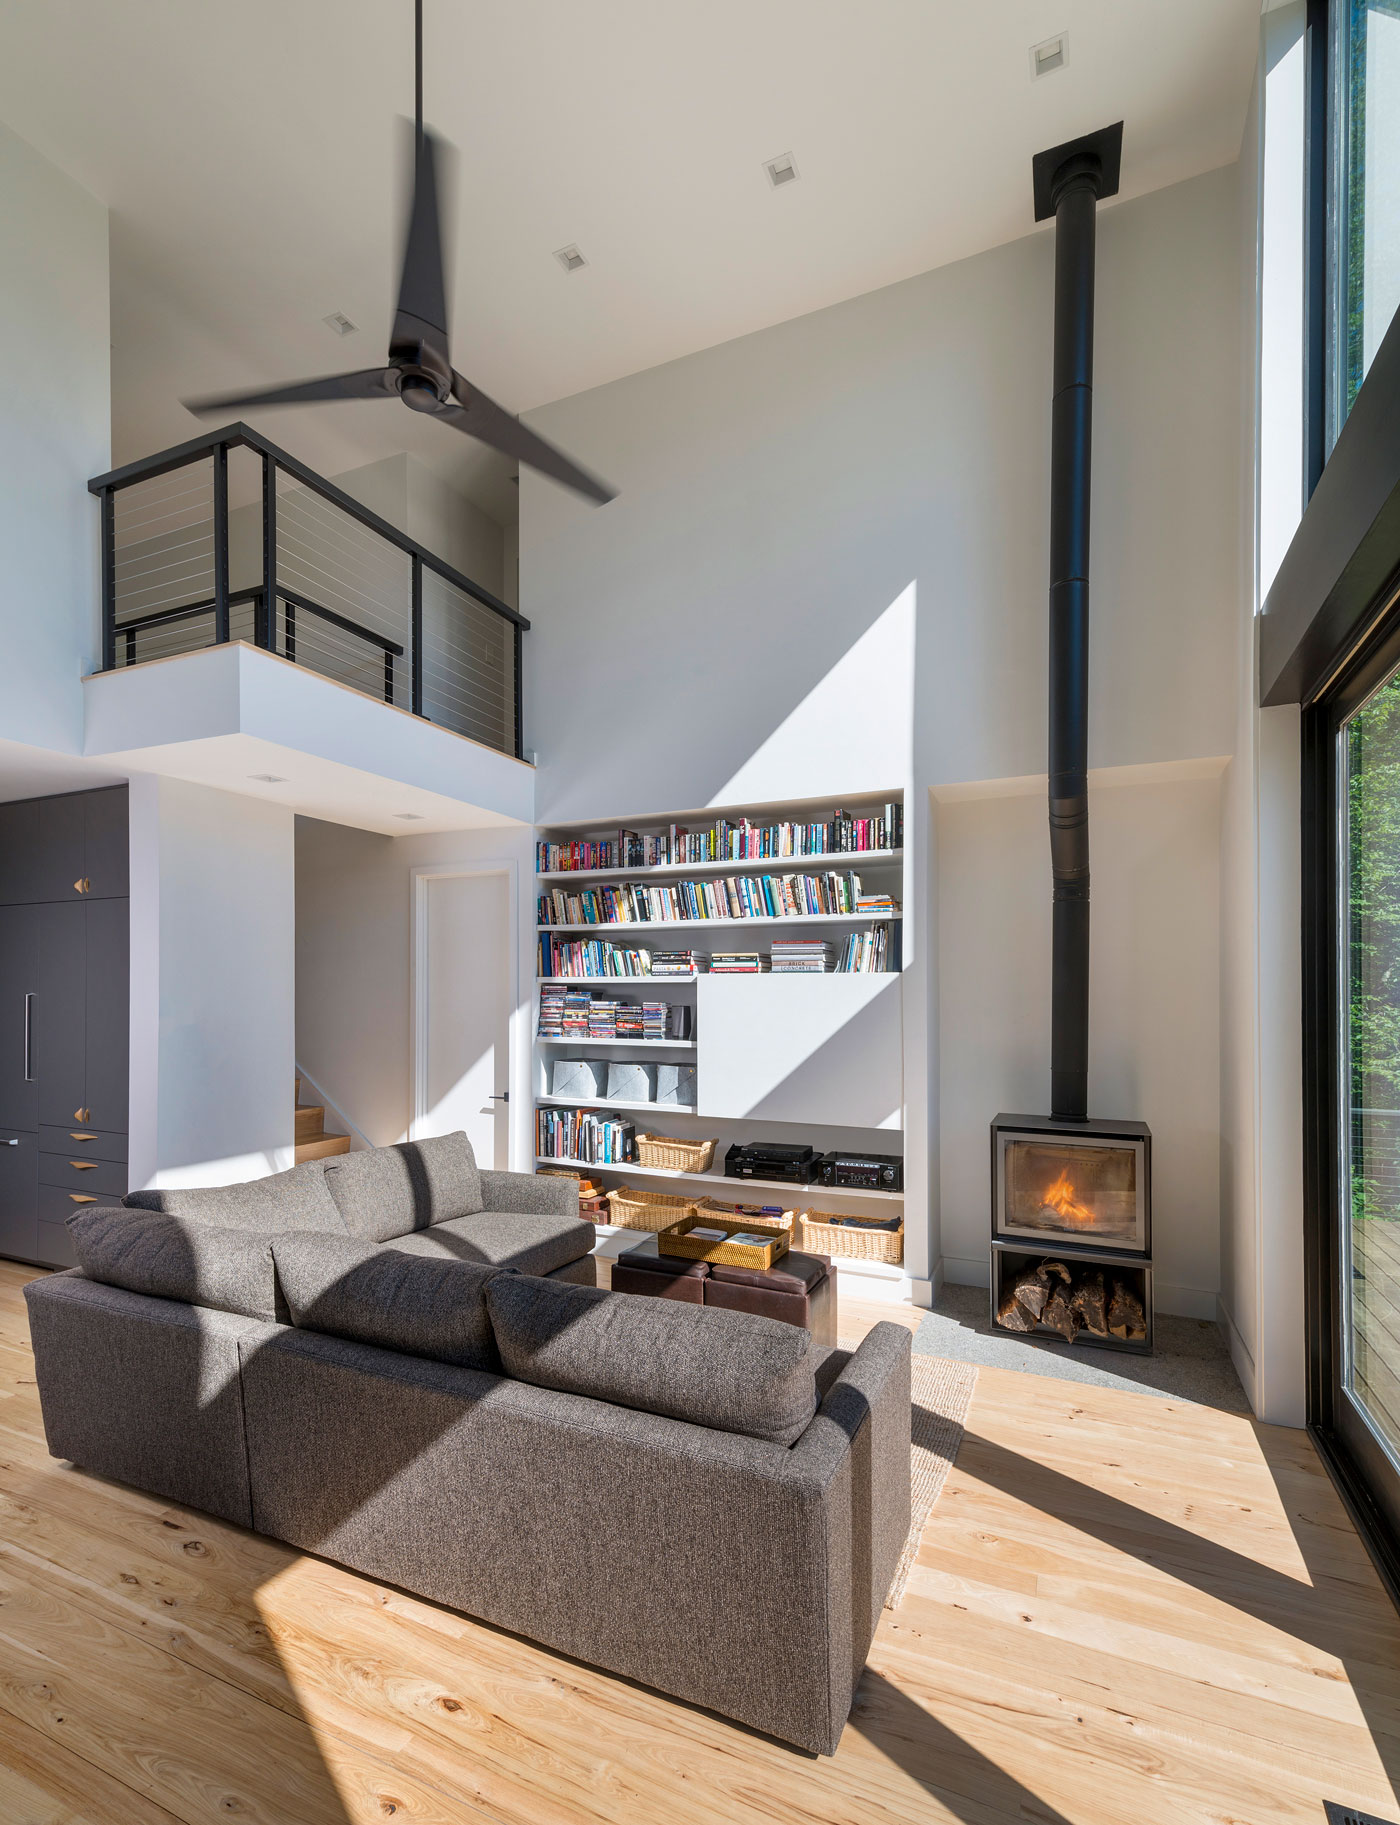 sleek living area with high ceilings a bookcase and a fireplace